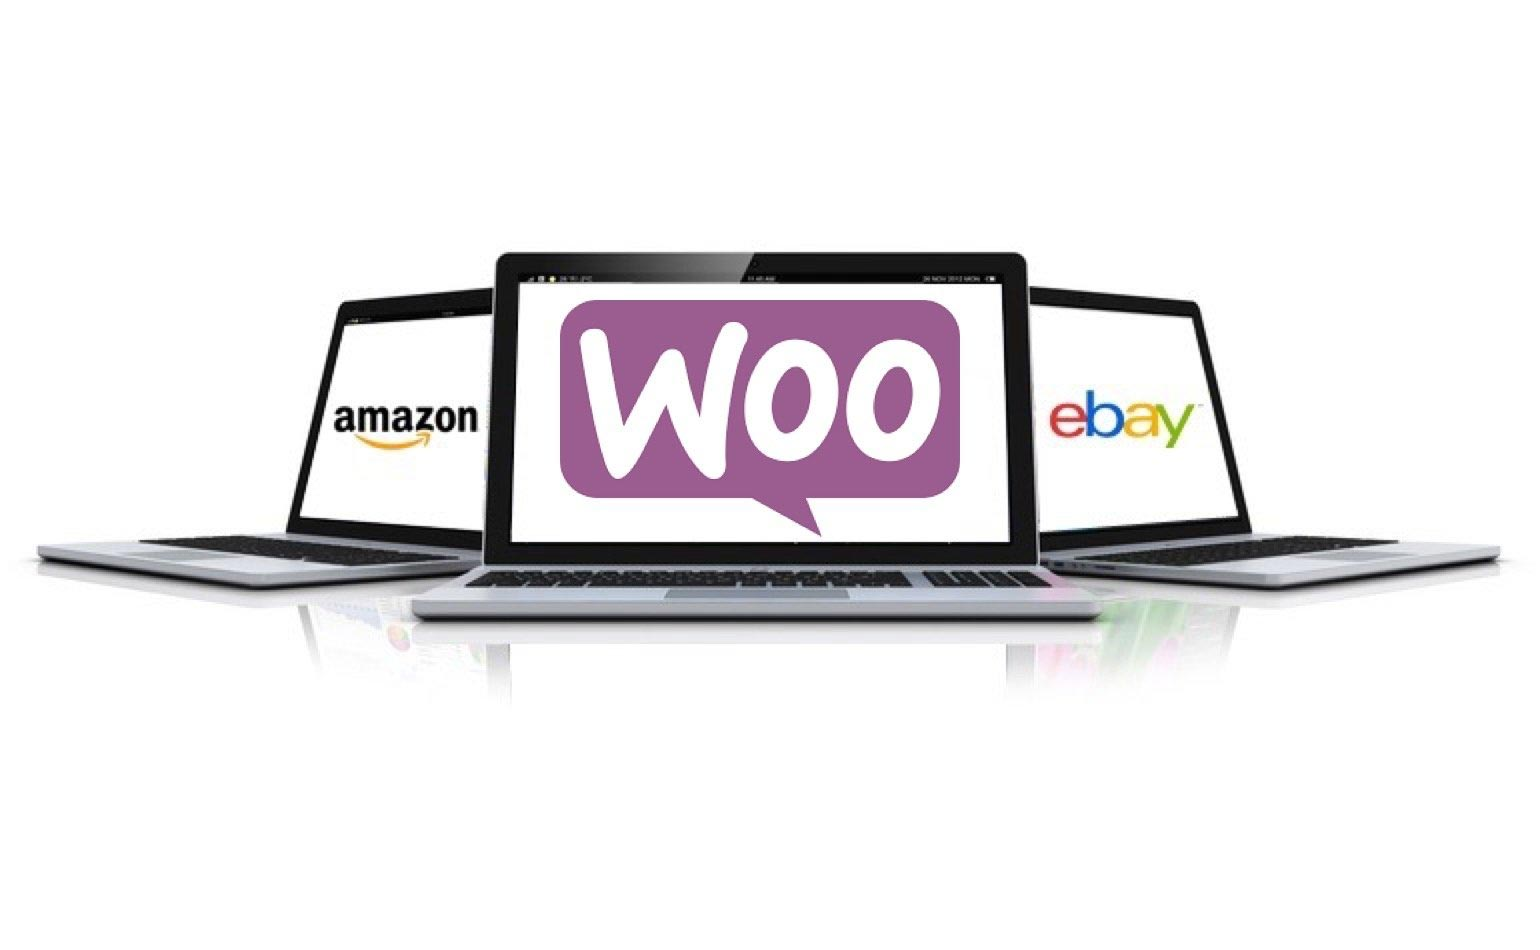 Woo-Ebay-Amazon